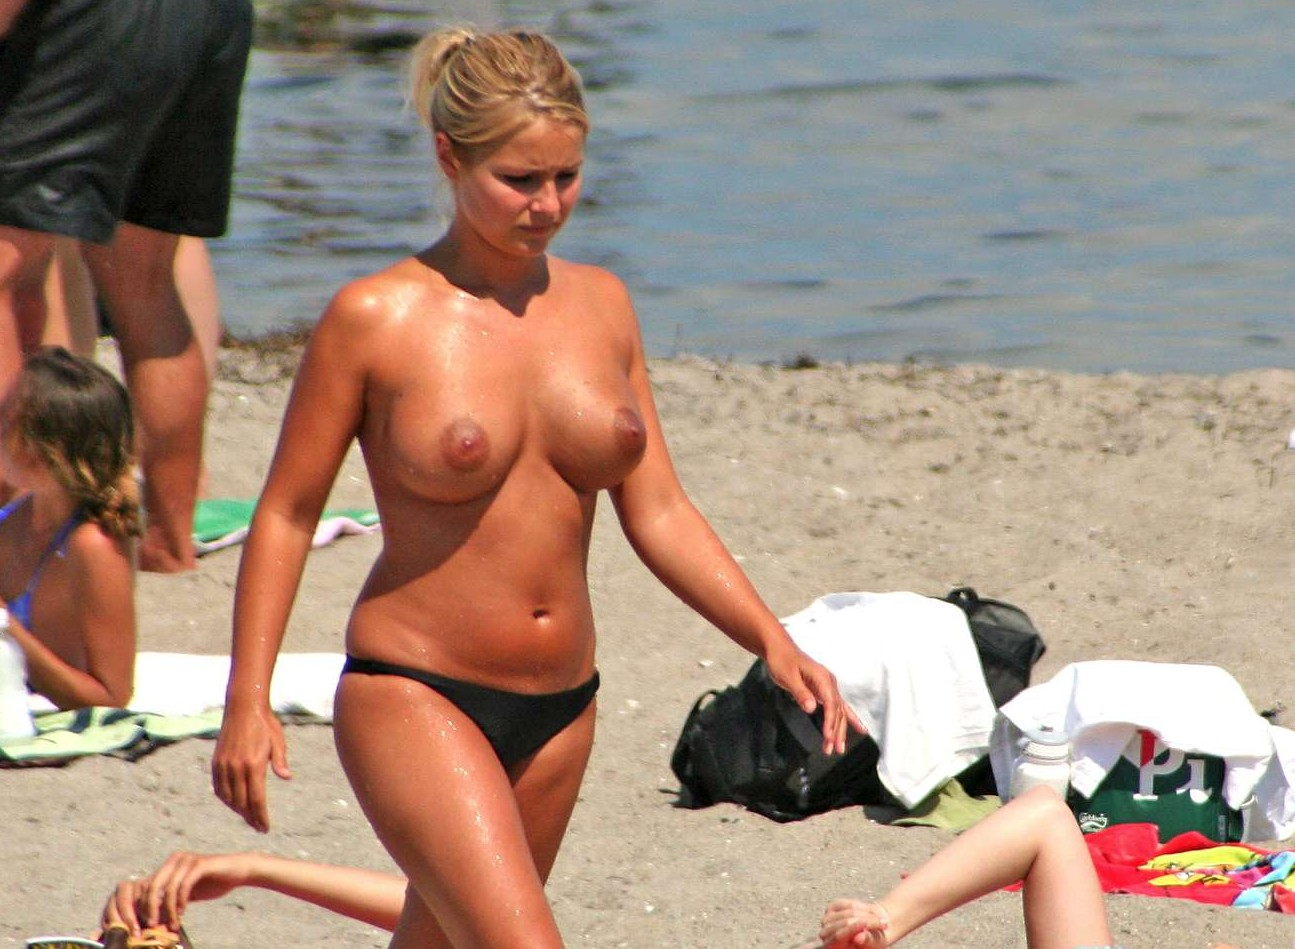 Sweet blond girl topless on hot sands revealing perky hard ...